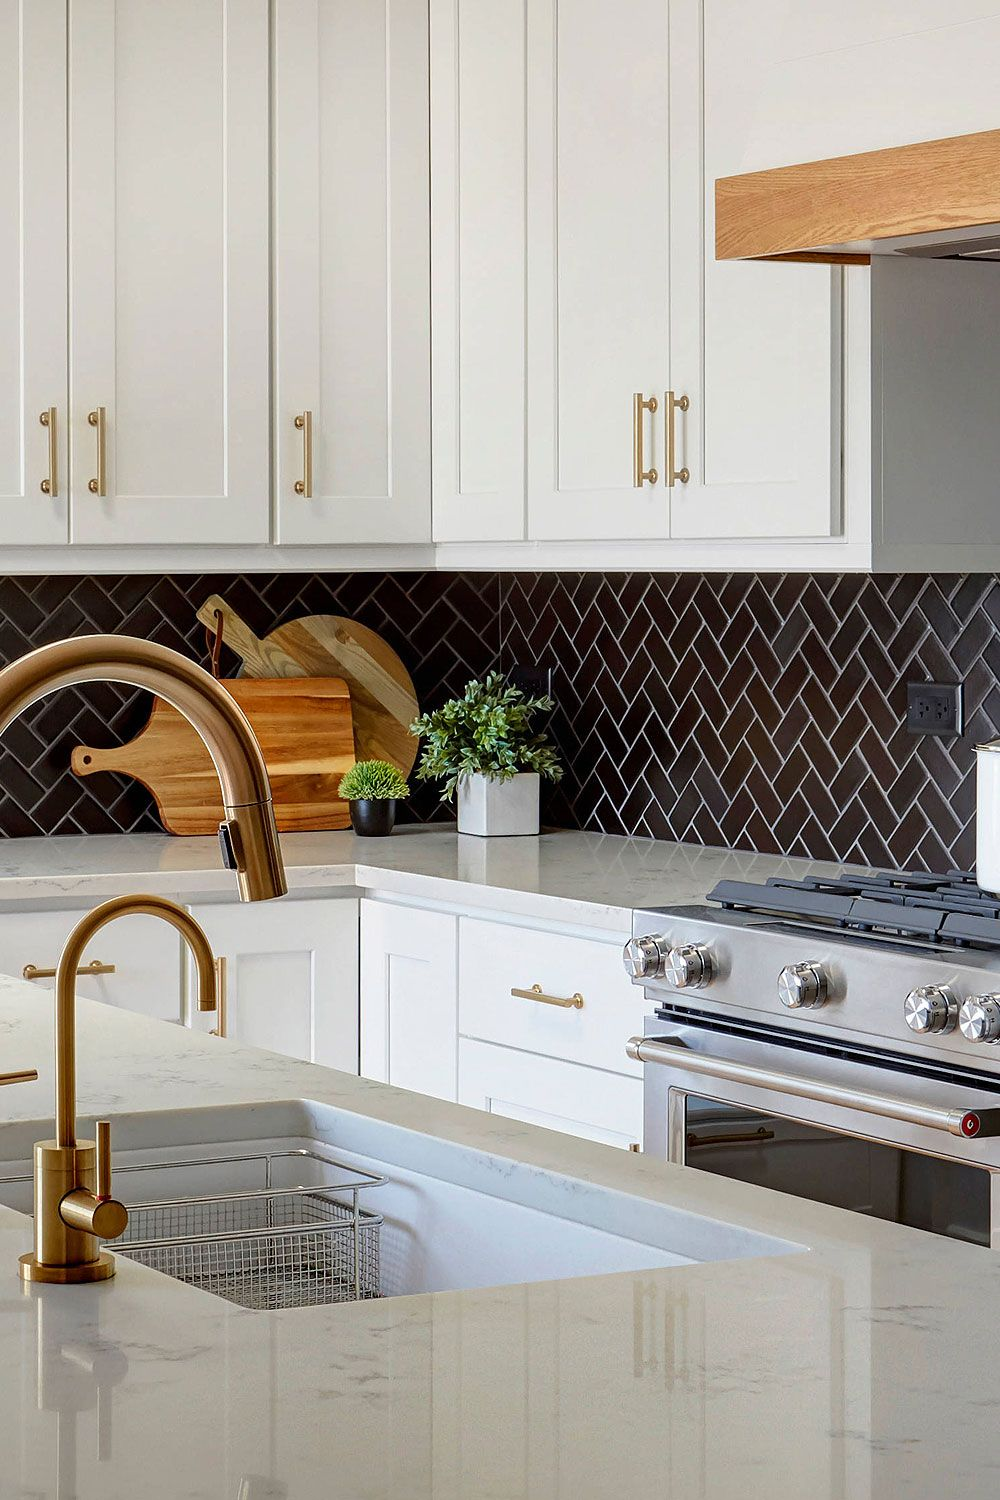 - 31+ Black Subway Backsplash ( Ideas ) - The Power Of Black Color